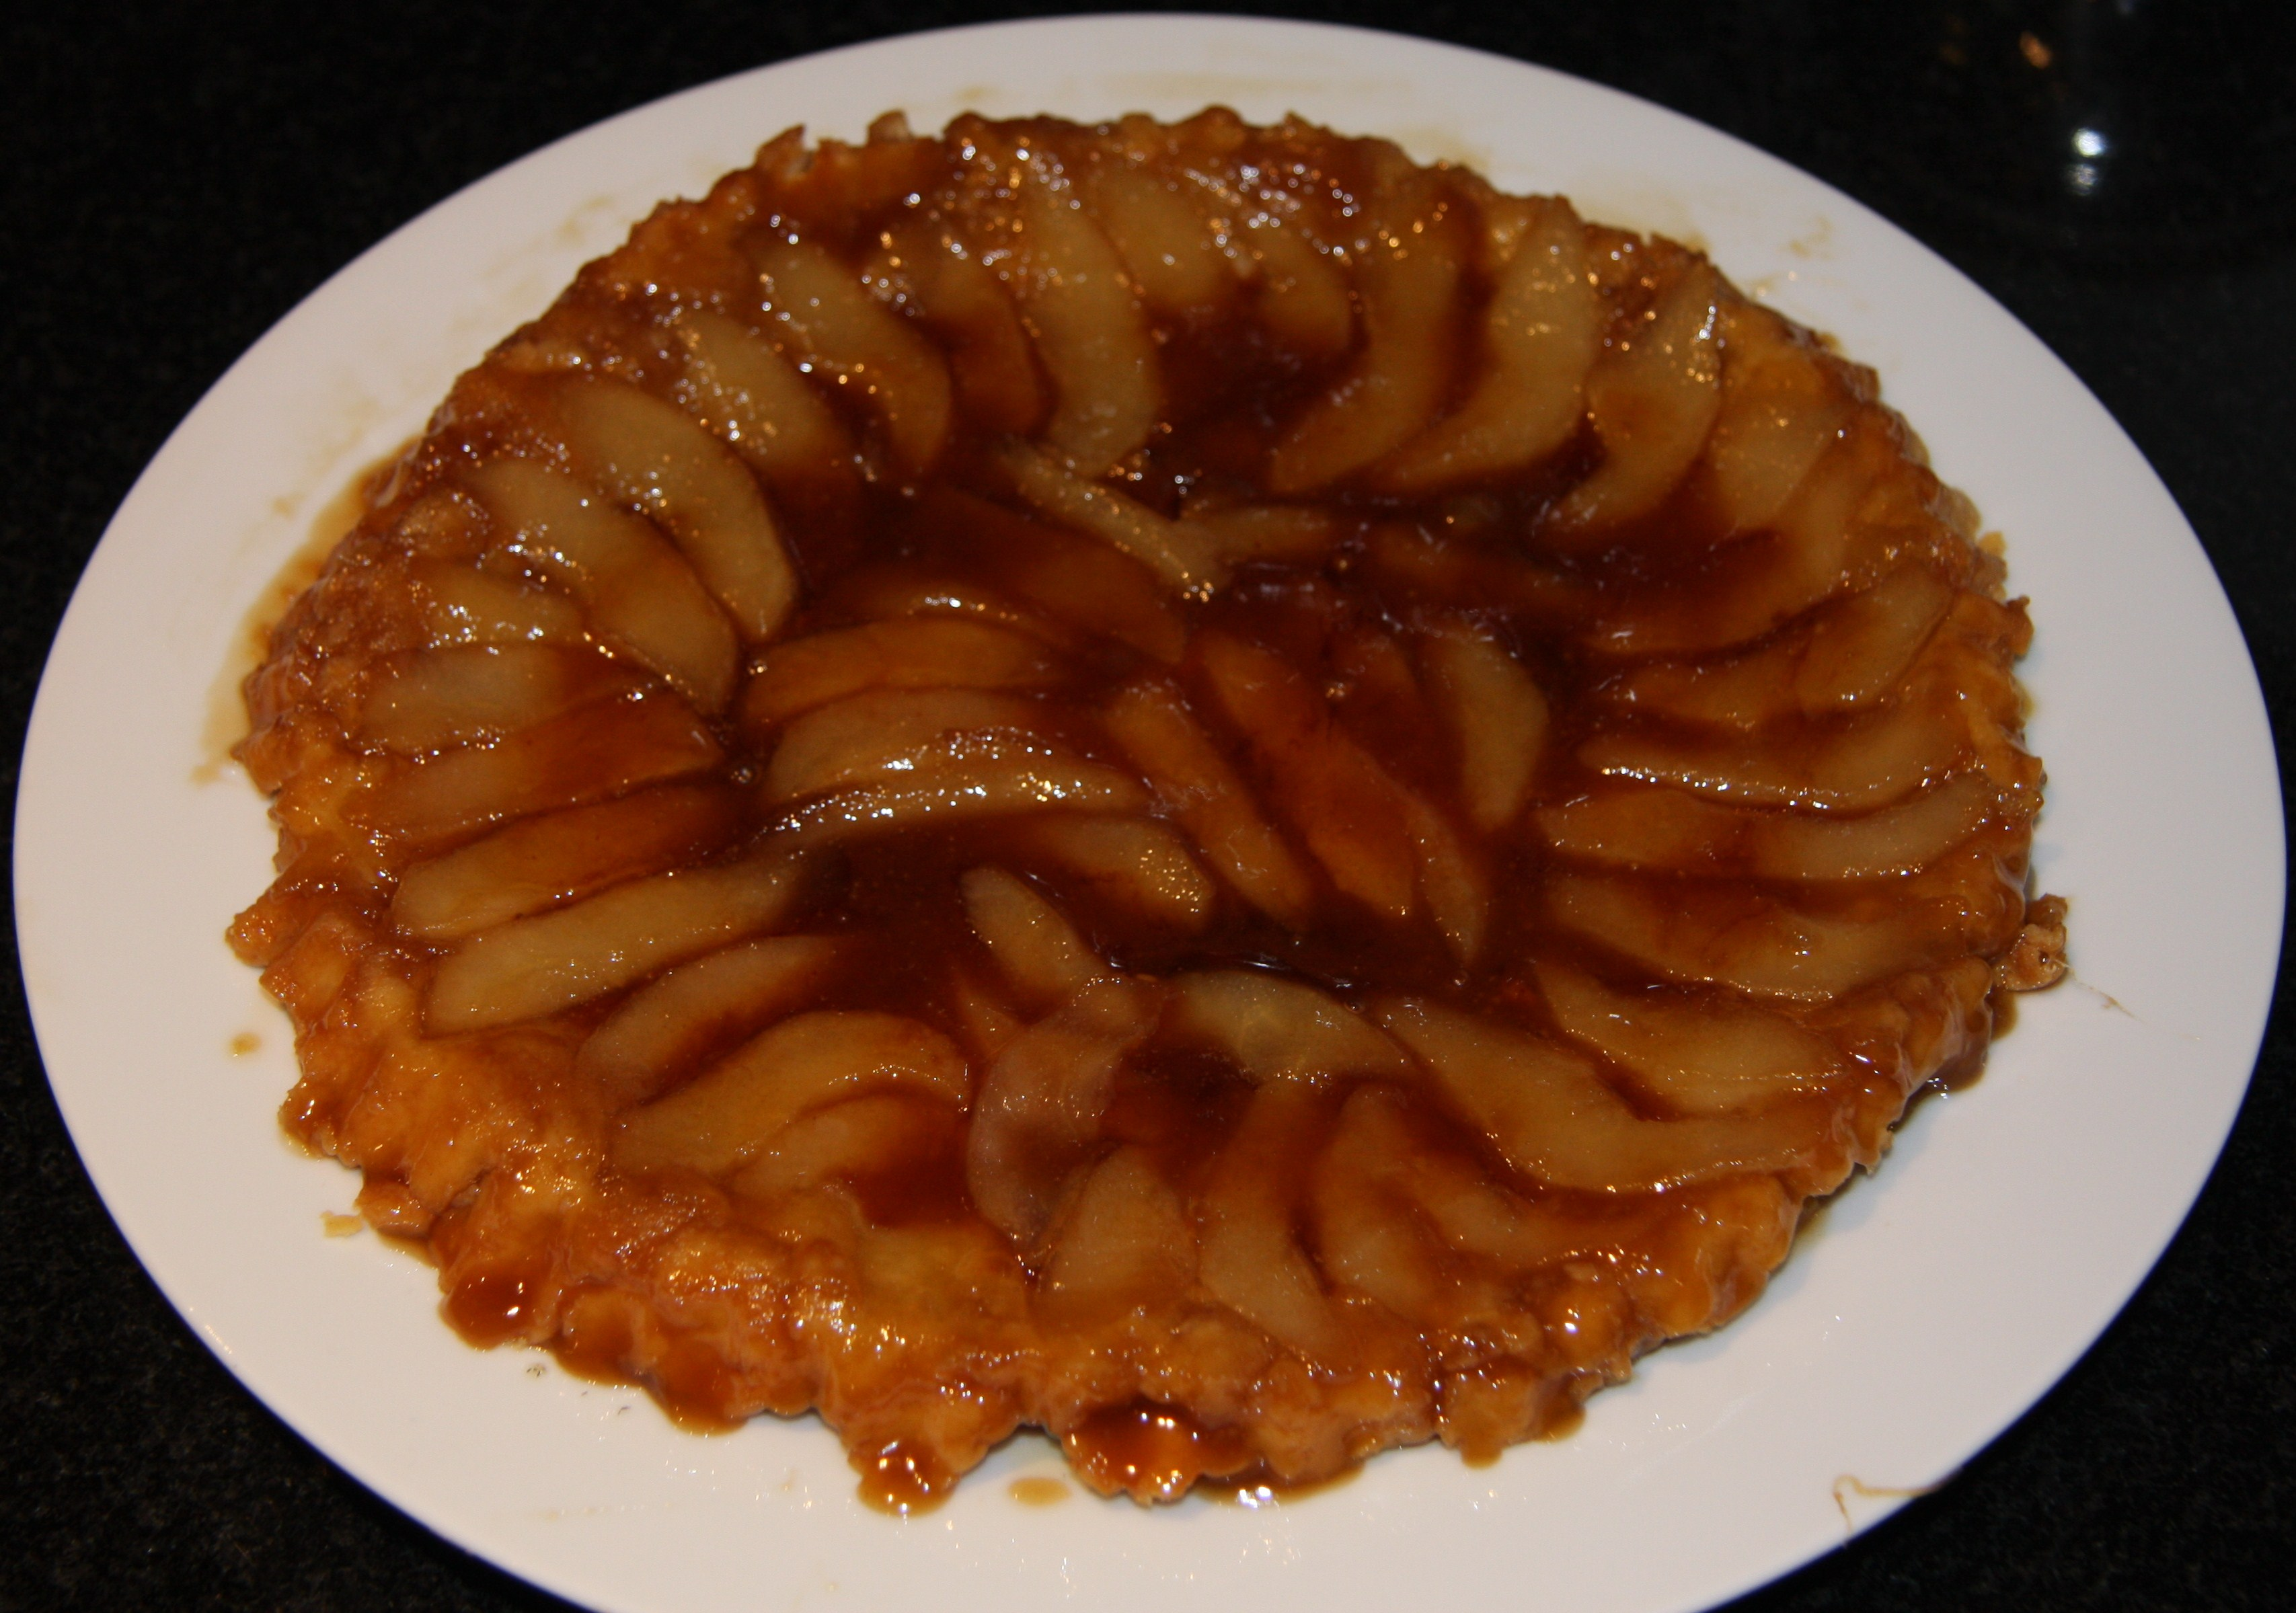 tarte tatin pear tarte tatin pear tarte tatin i m not a back to tarte ...